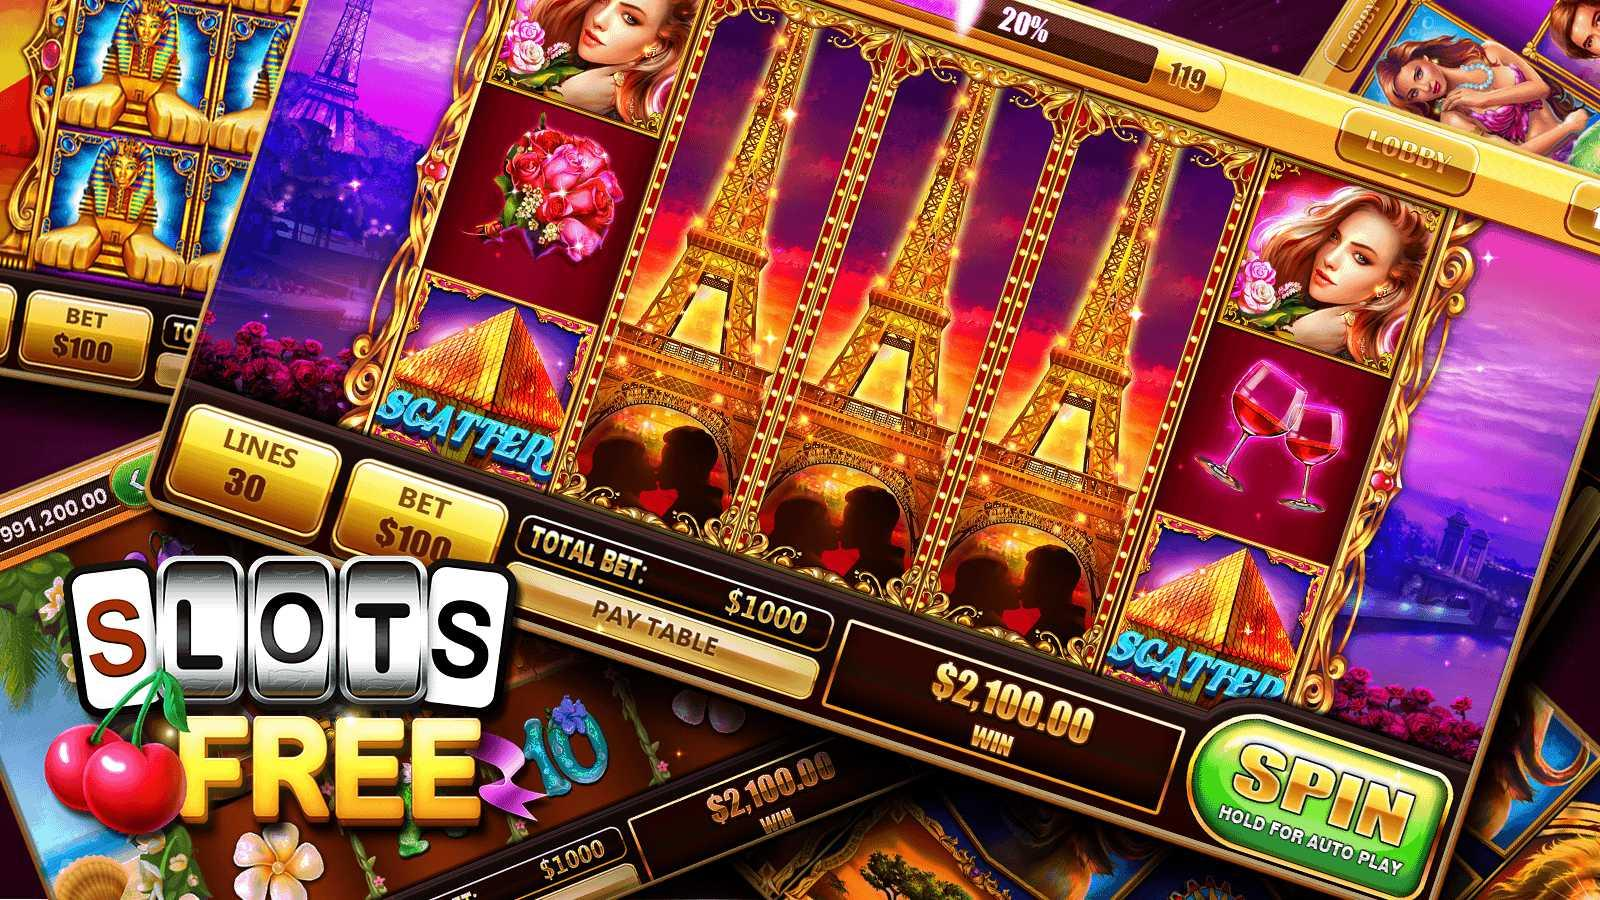 Ice World Slot Machine - Free to Play Online Casino Game